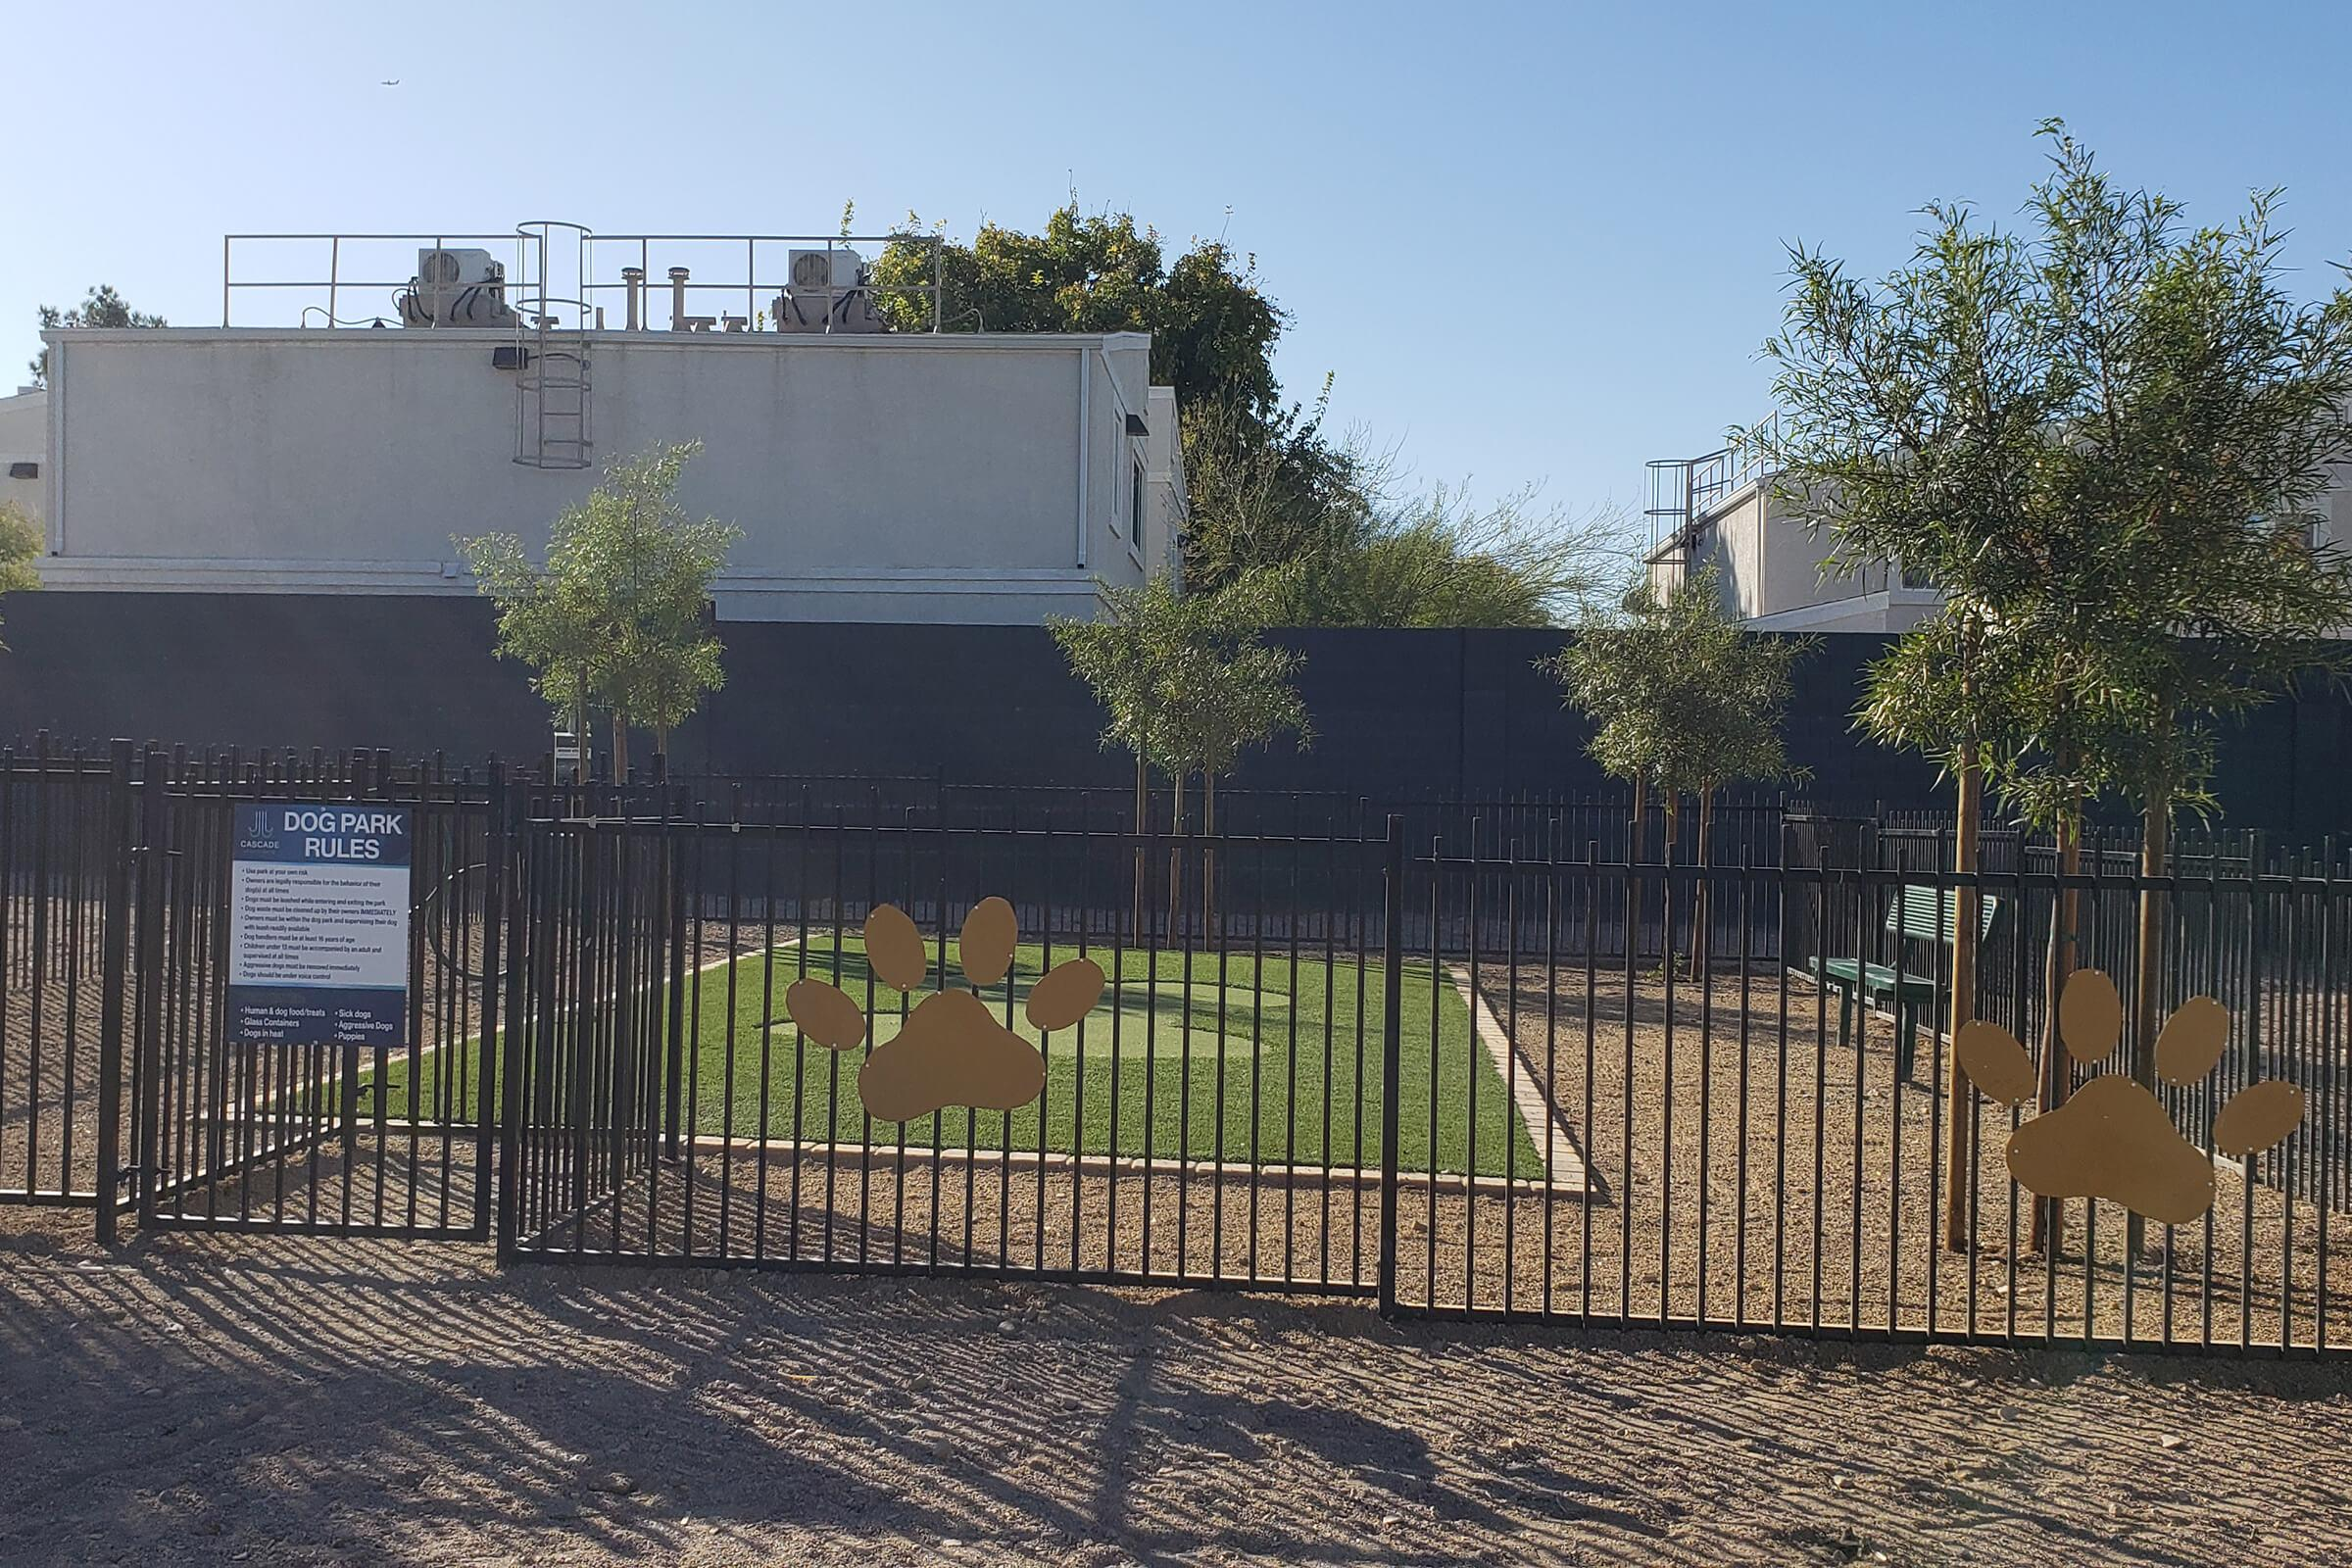 a gate in front of a fence